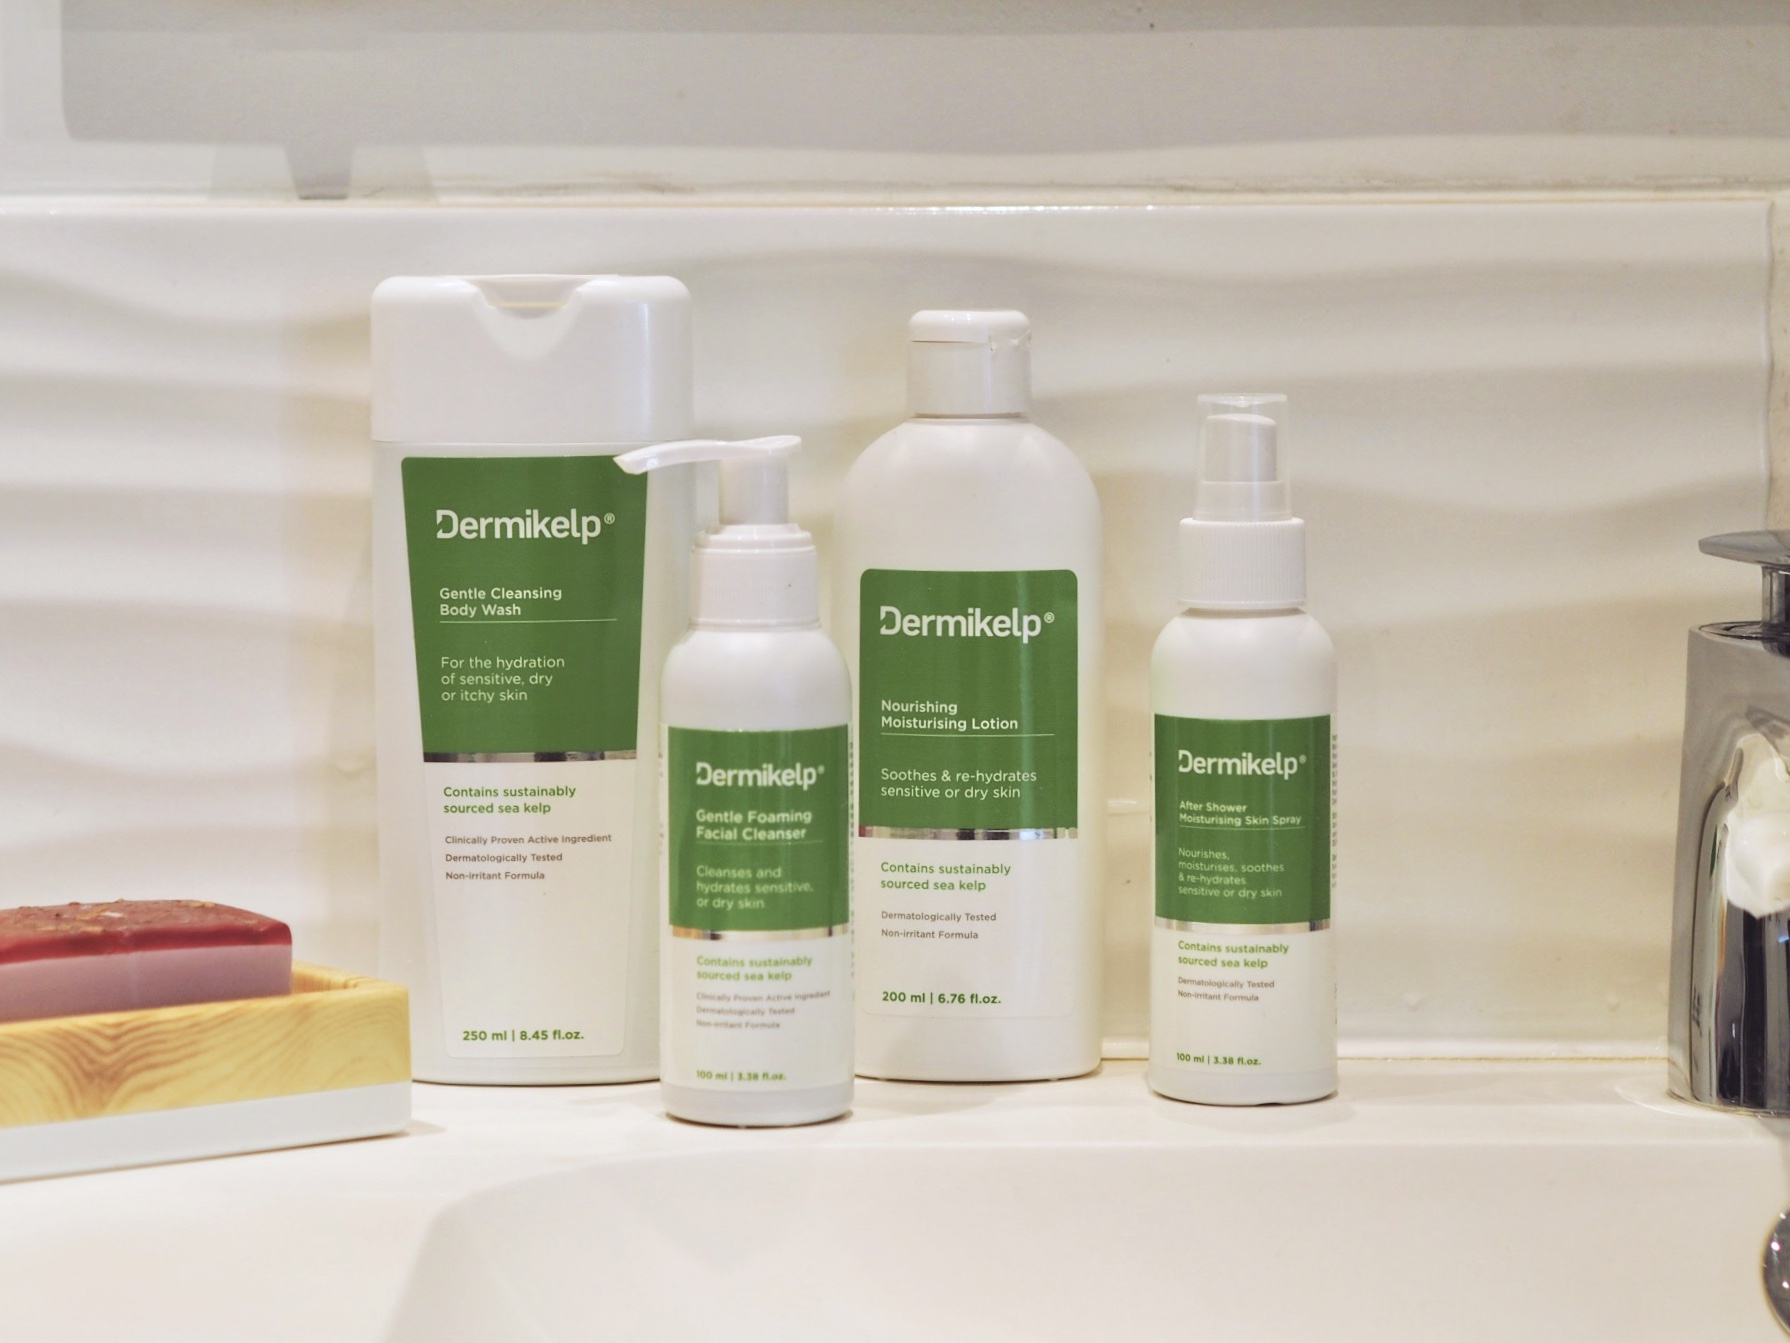 Dermikelp review